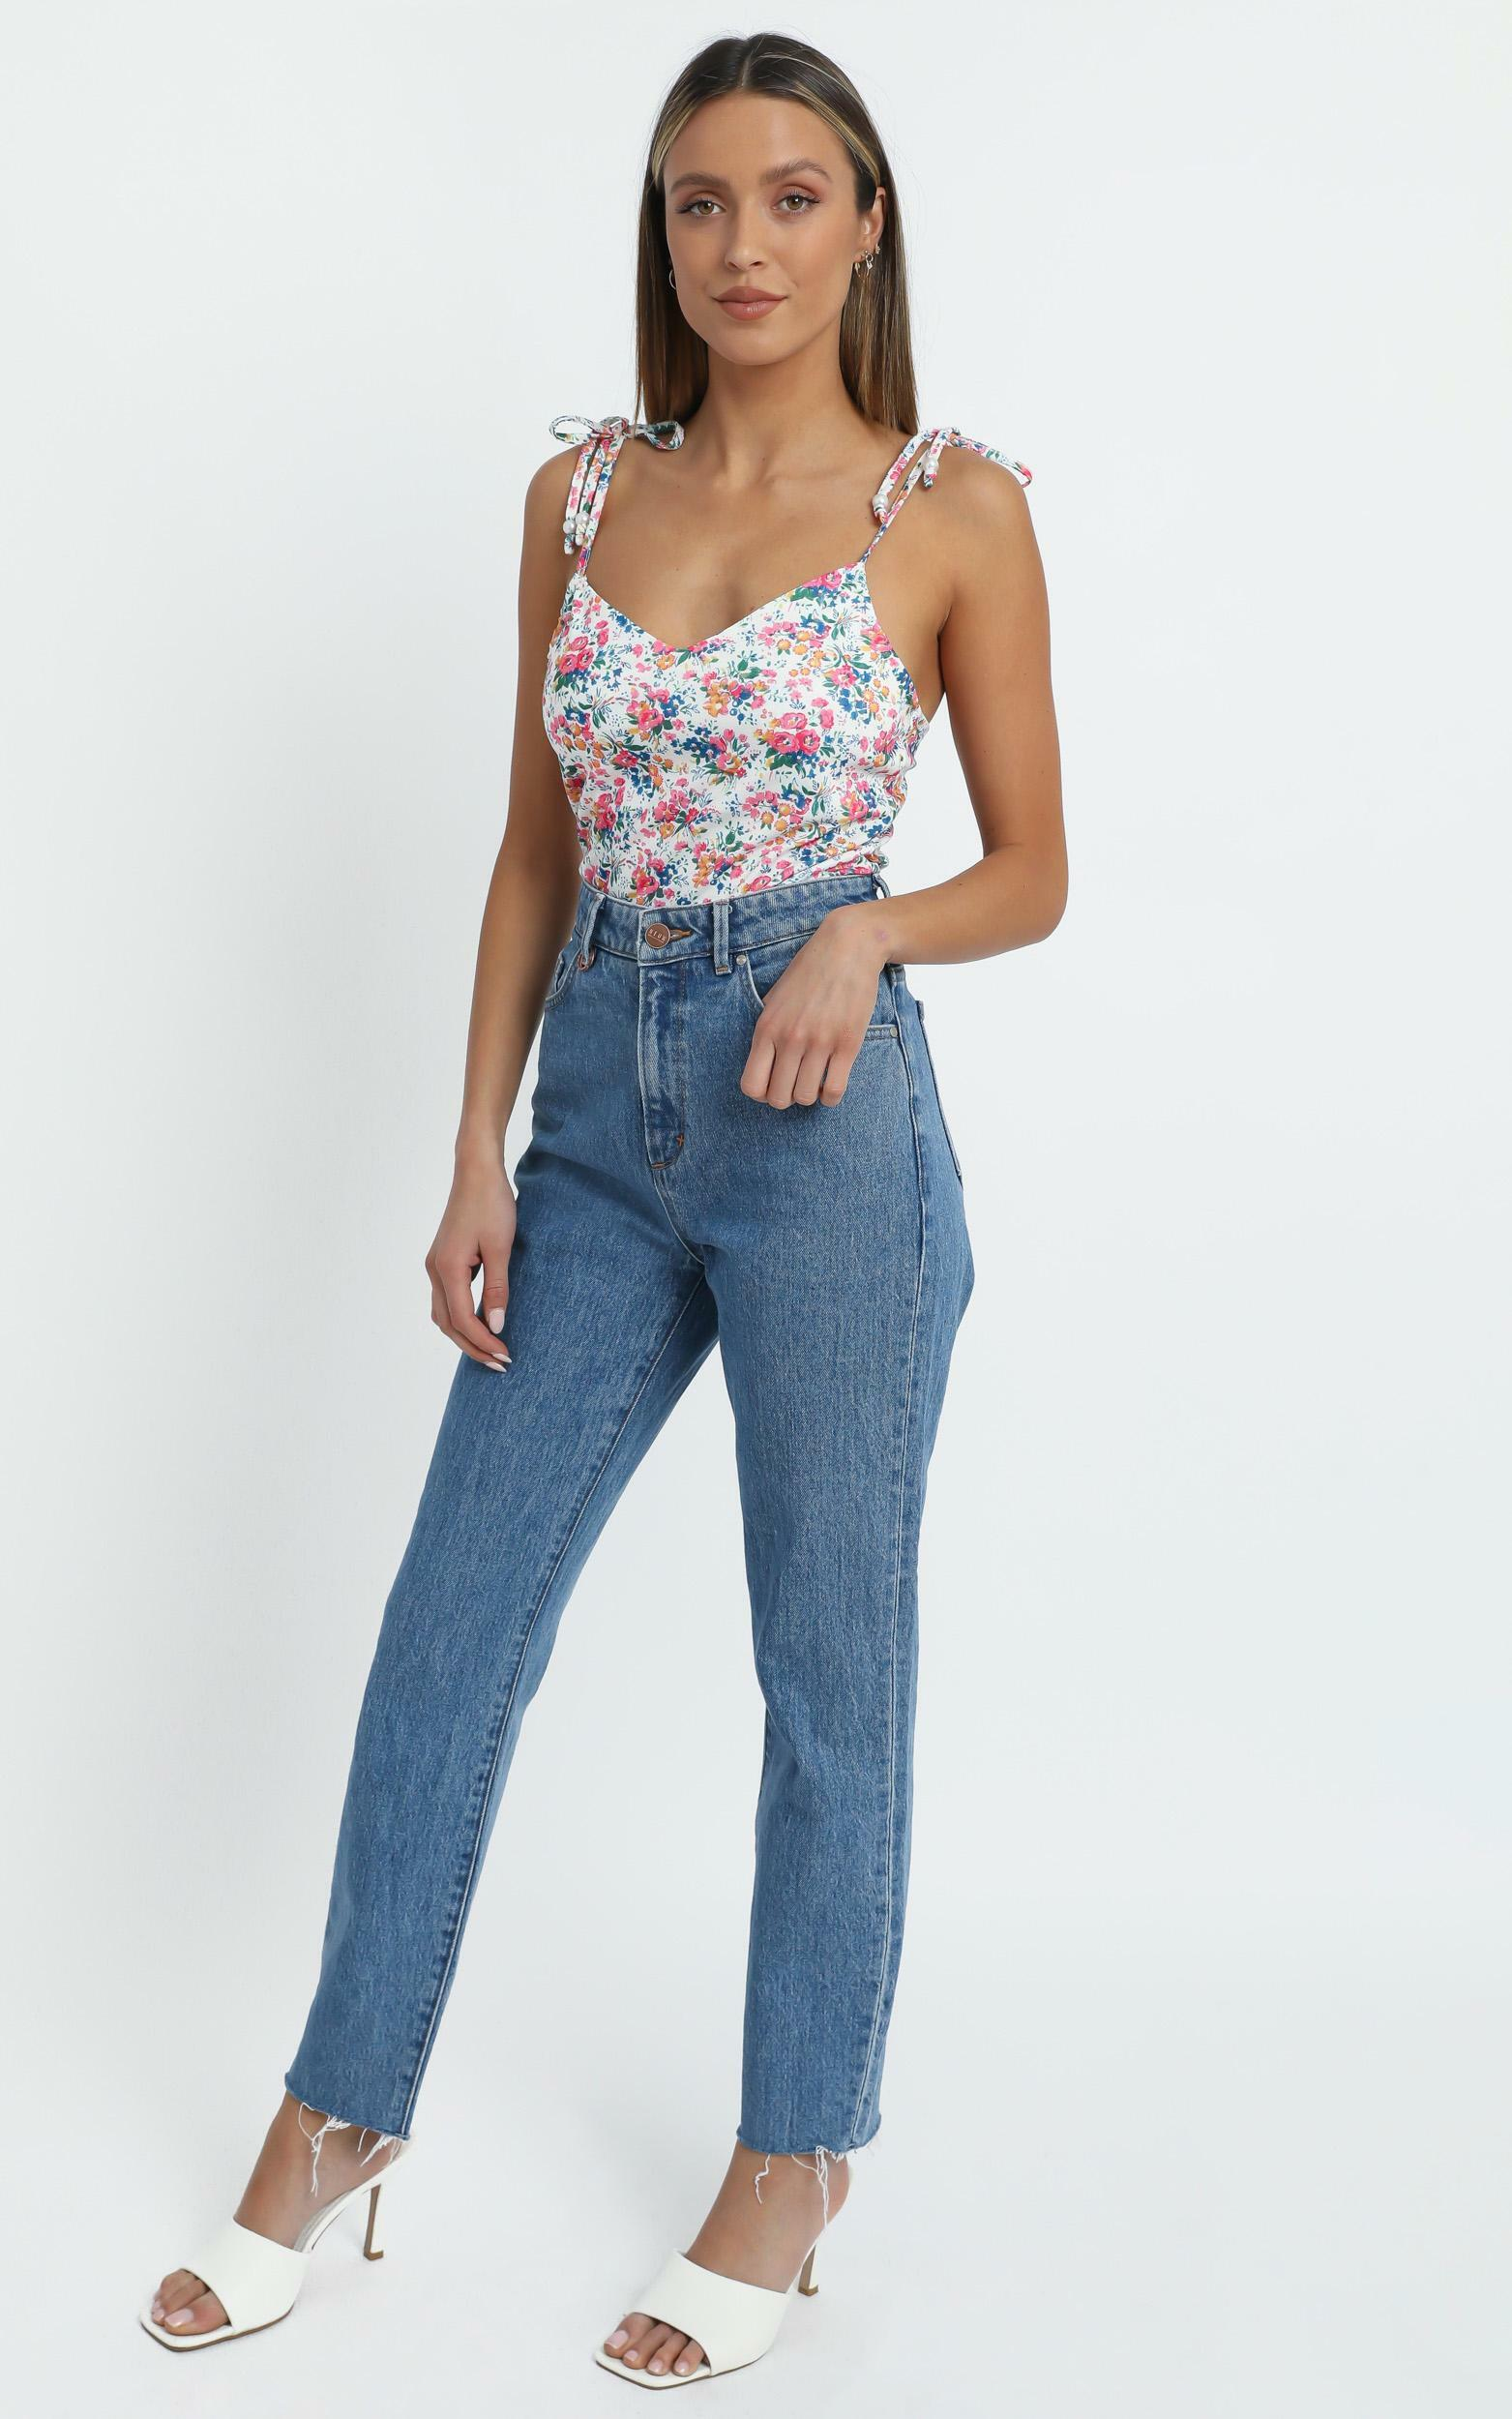 Haylo Top in Vivid Floral - 14 (XL), White, hi-res image number null